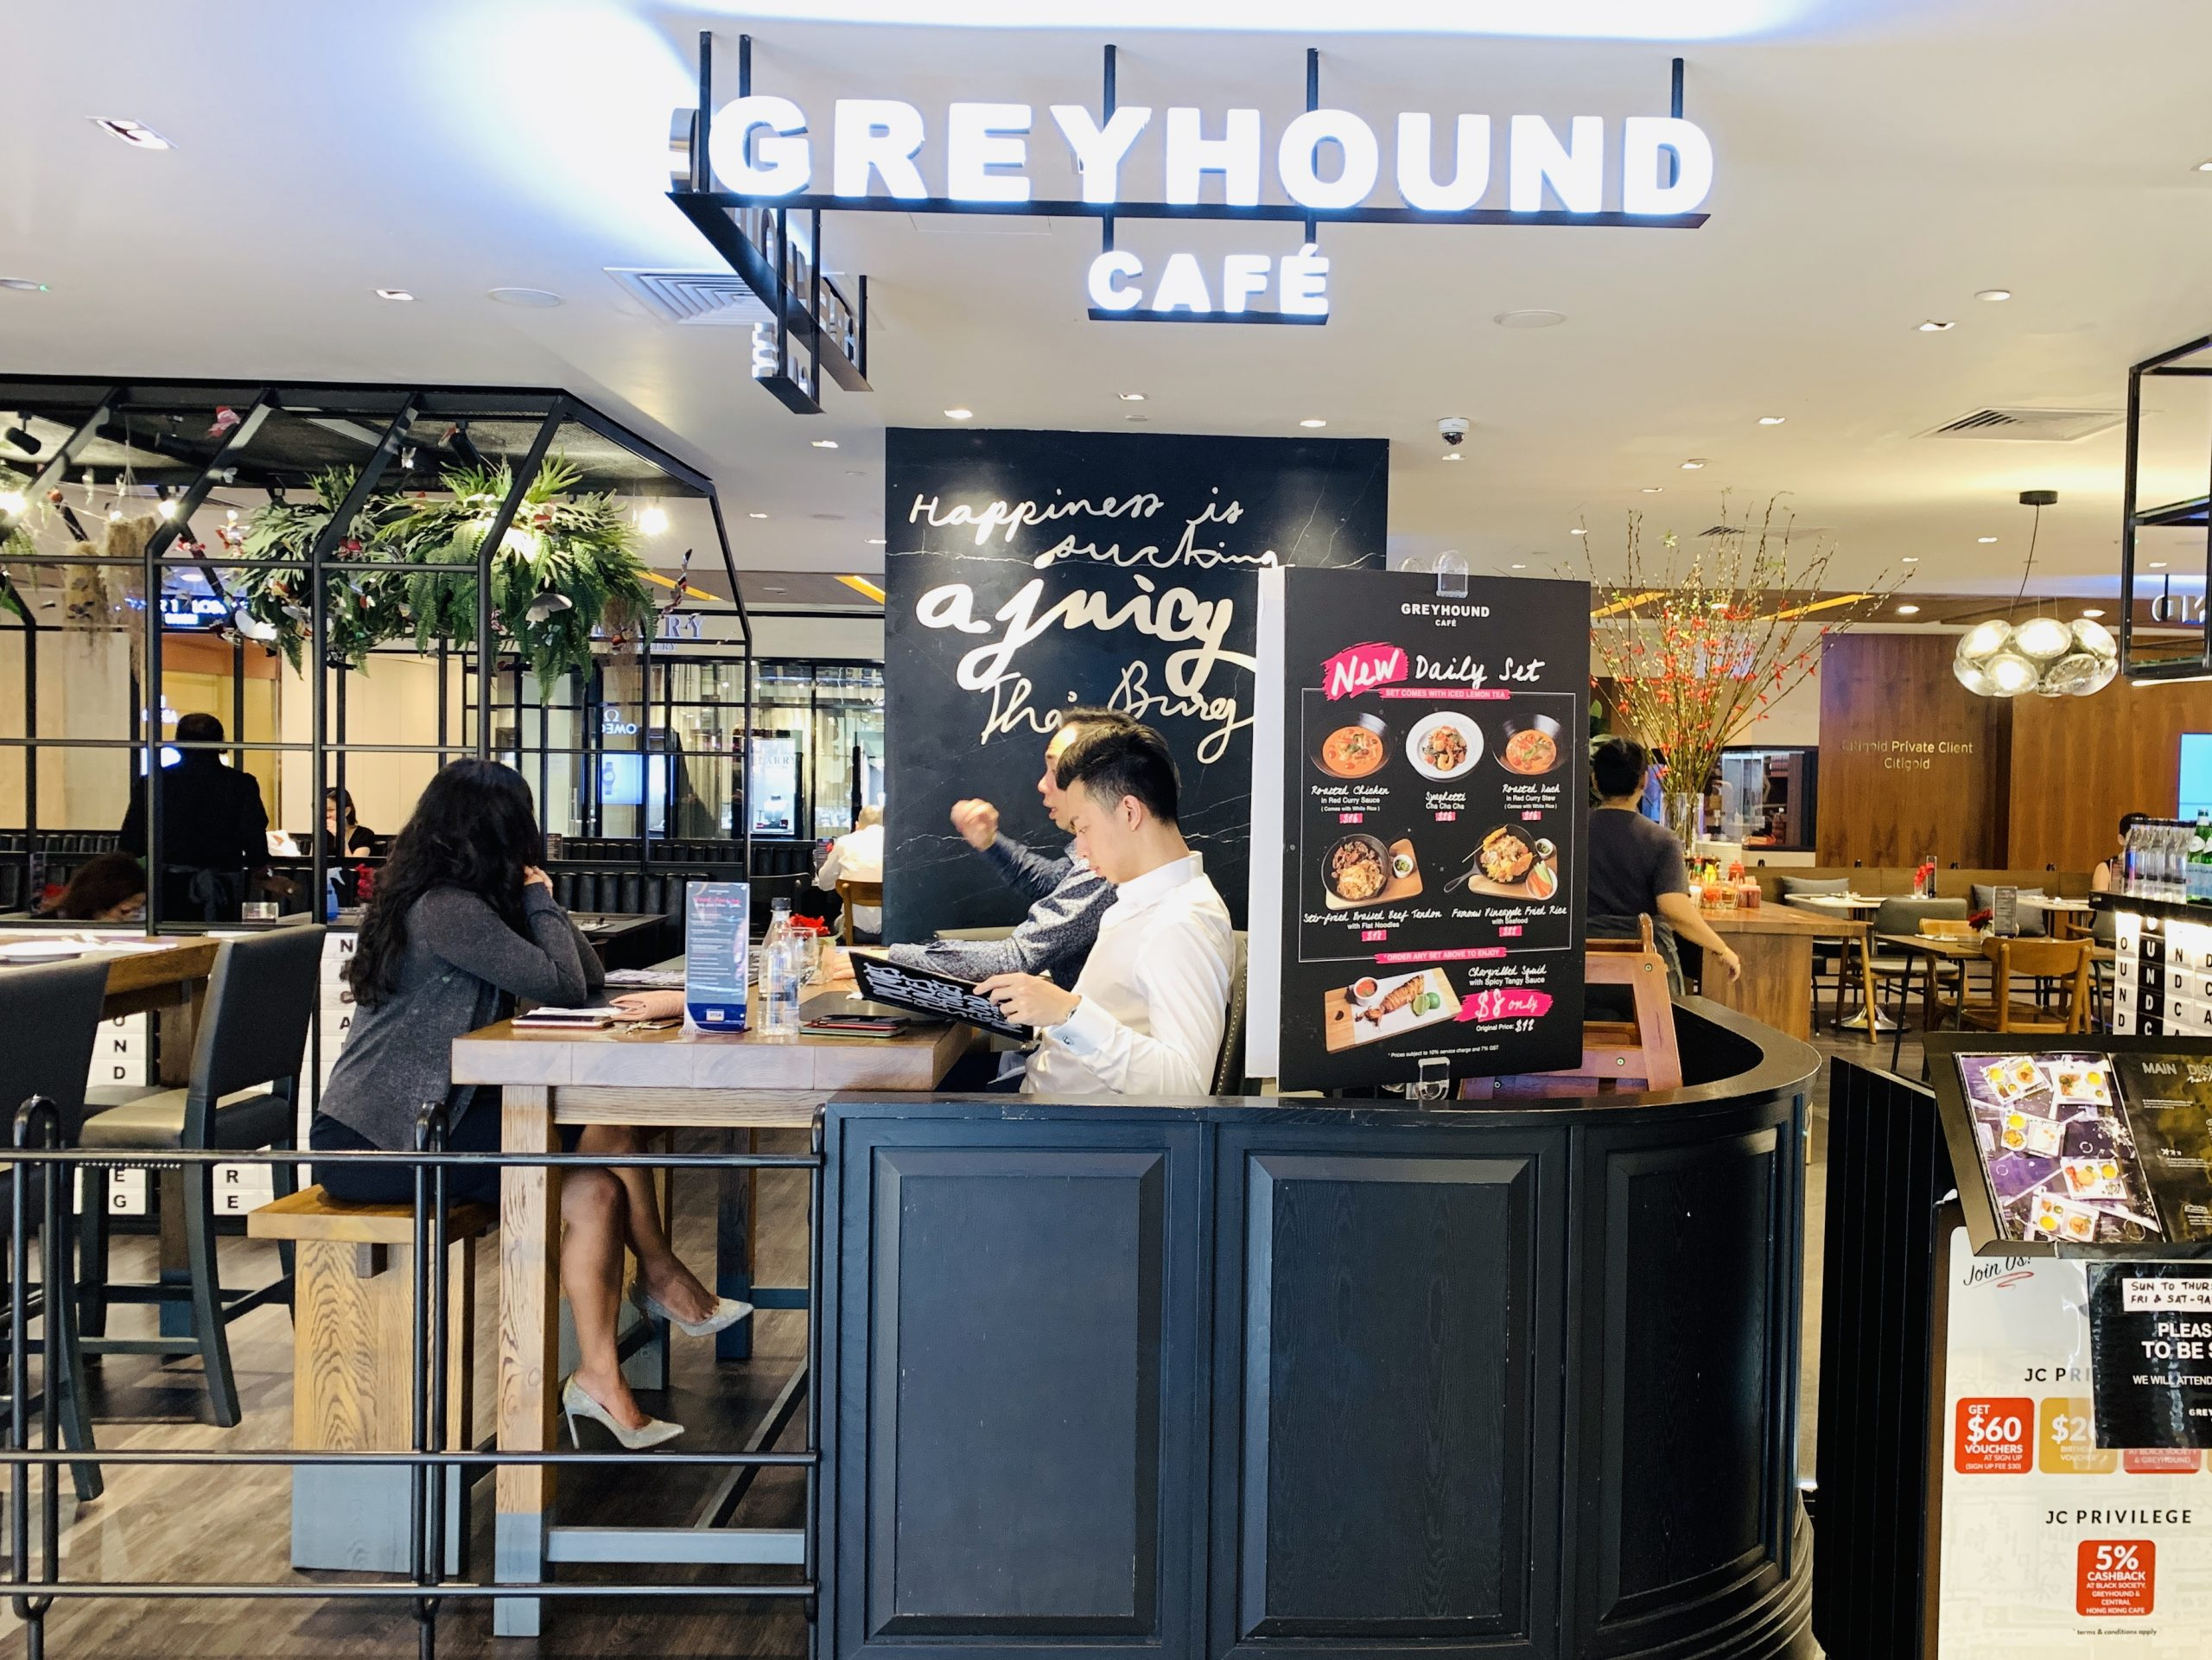 Greyhound Cafe - Restaurant Front